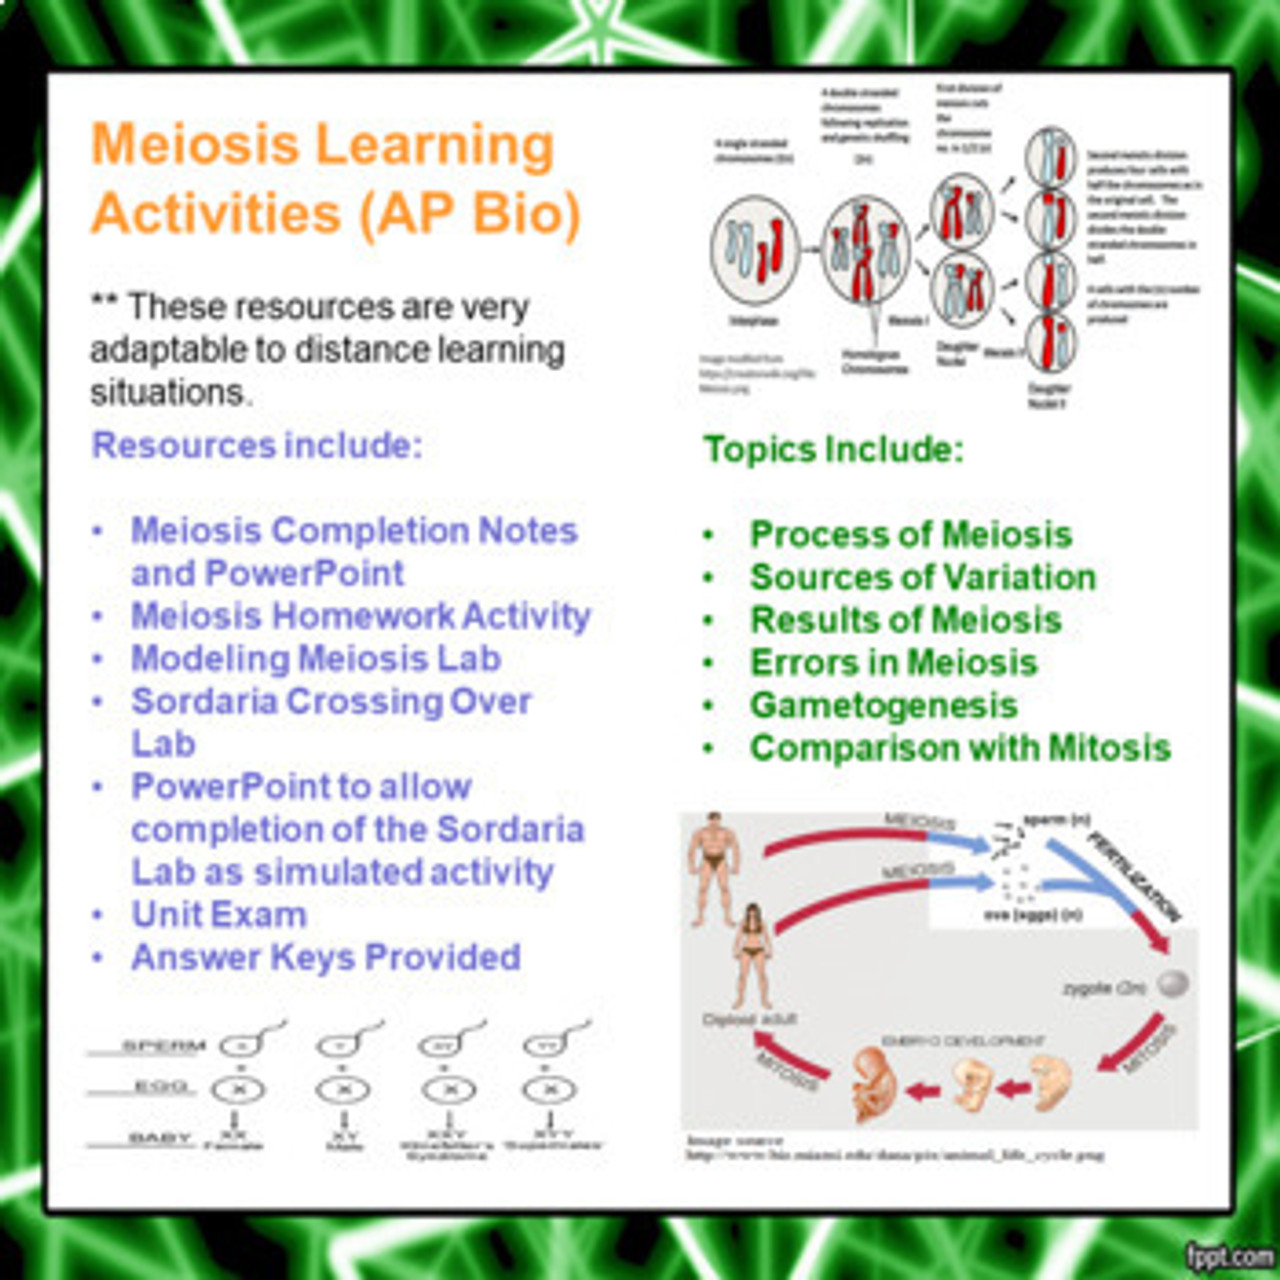 Meiosis Learning Activities for AP Biology (Distance Learning)